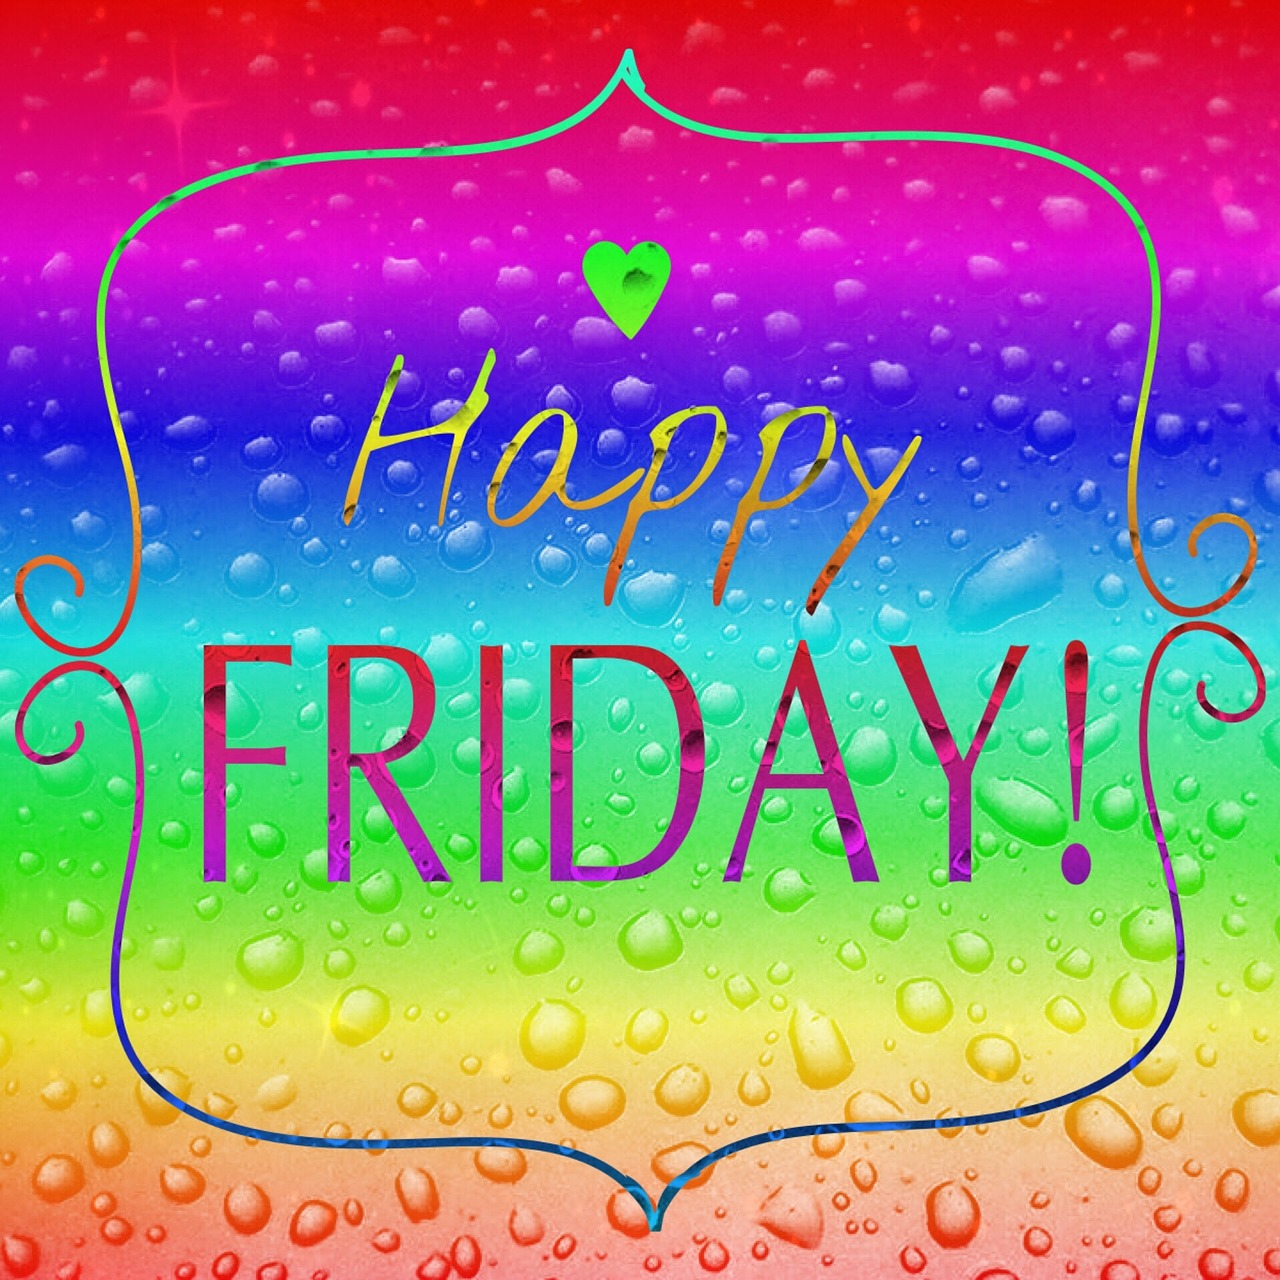 Spoonful of Positive: Friday Yay!